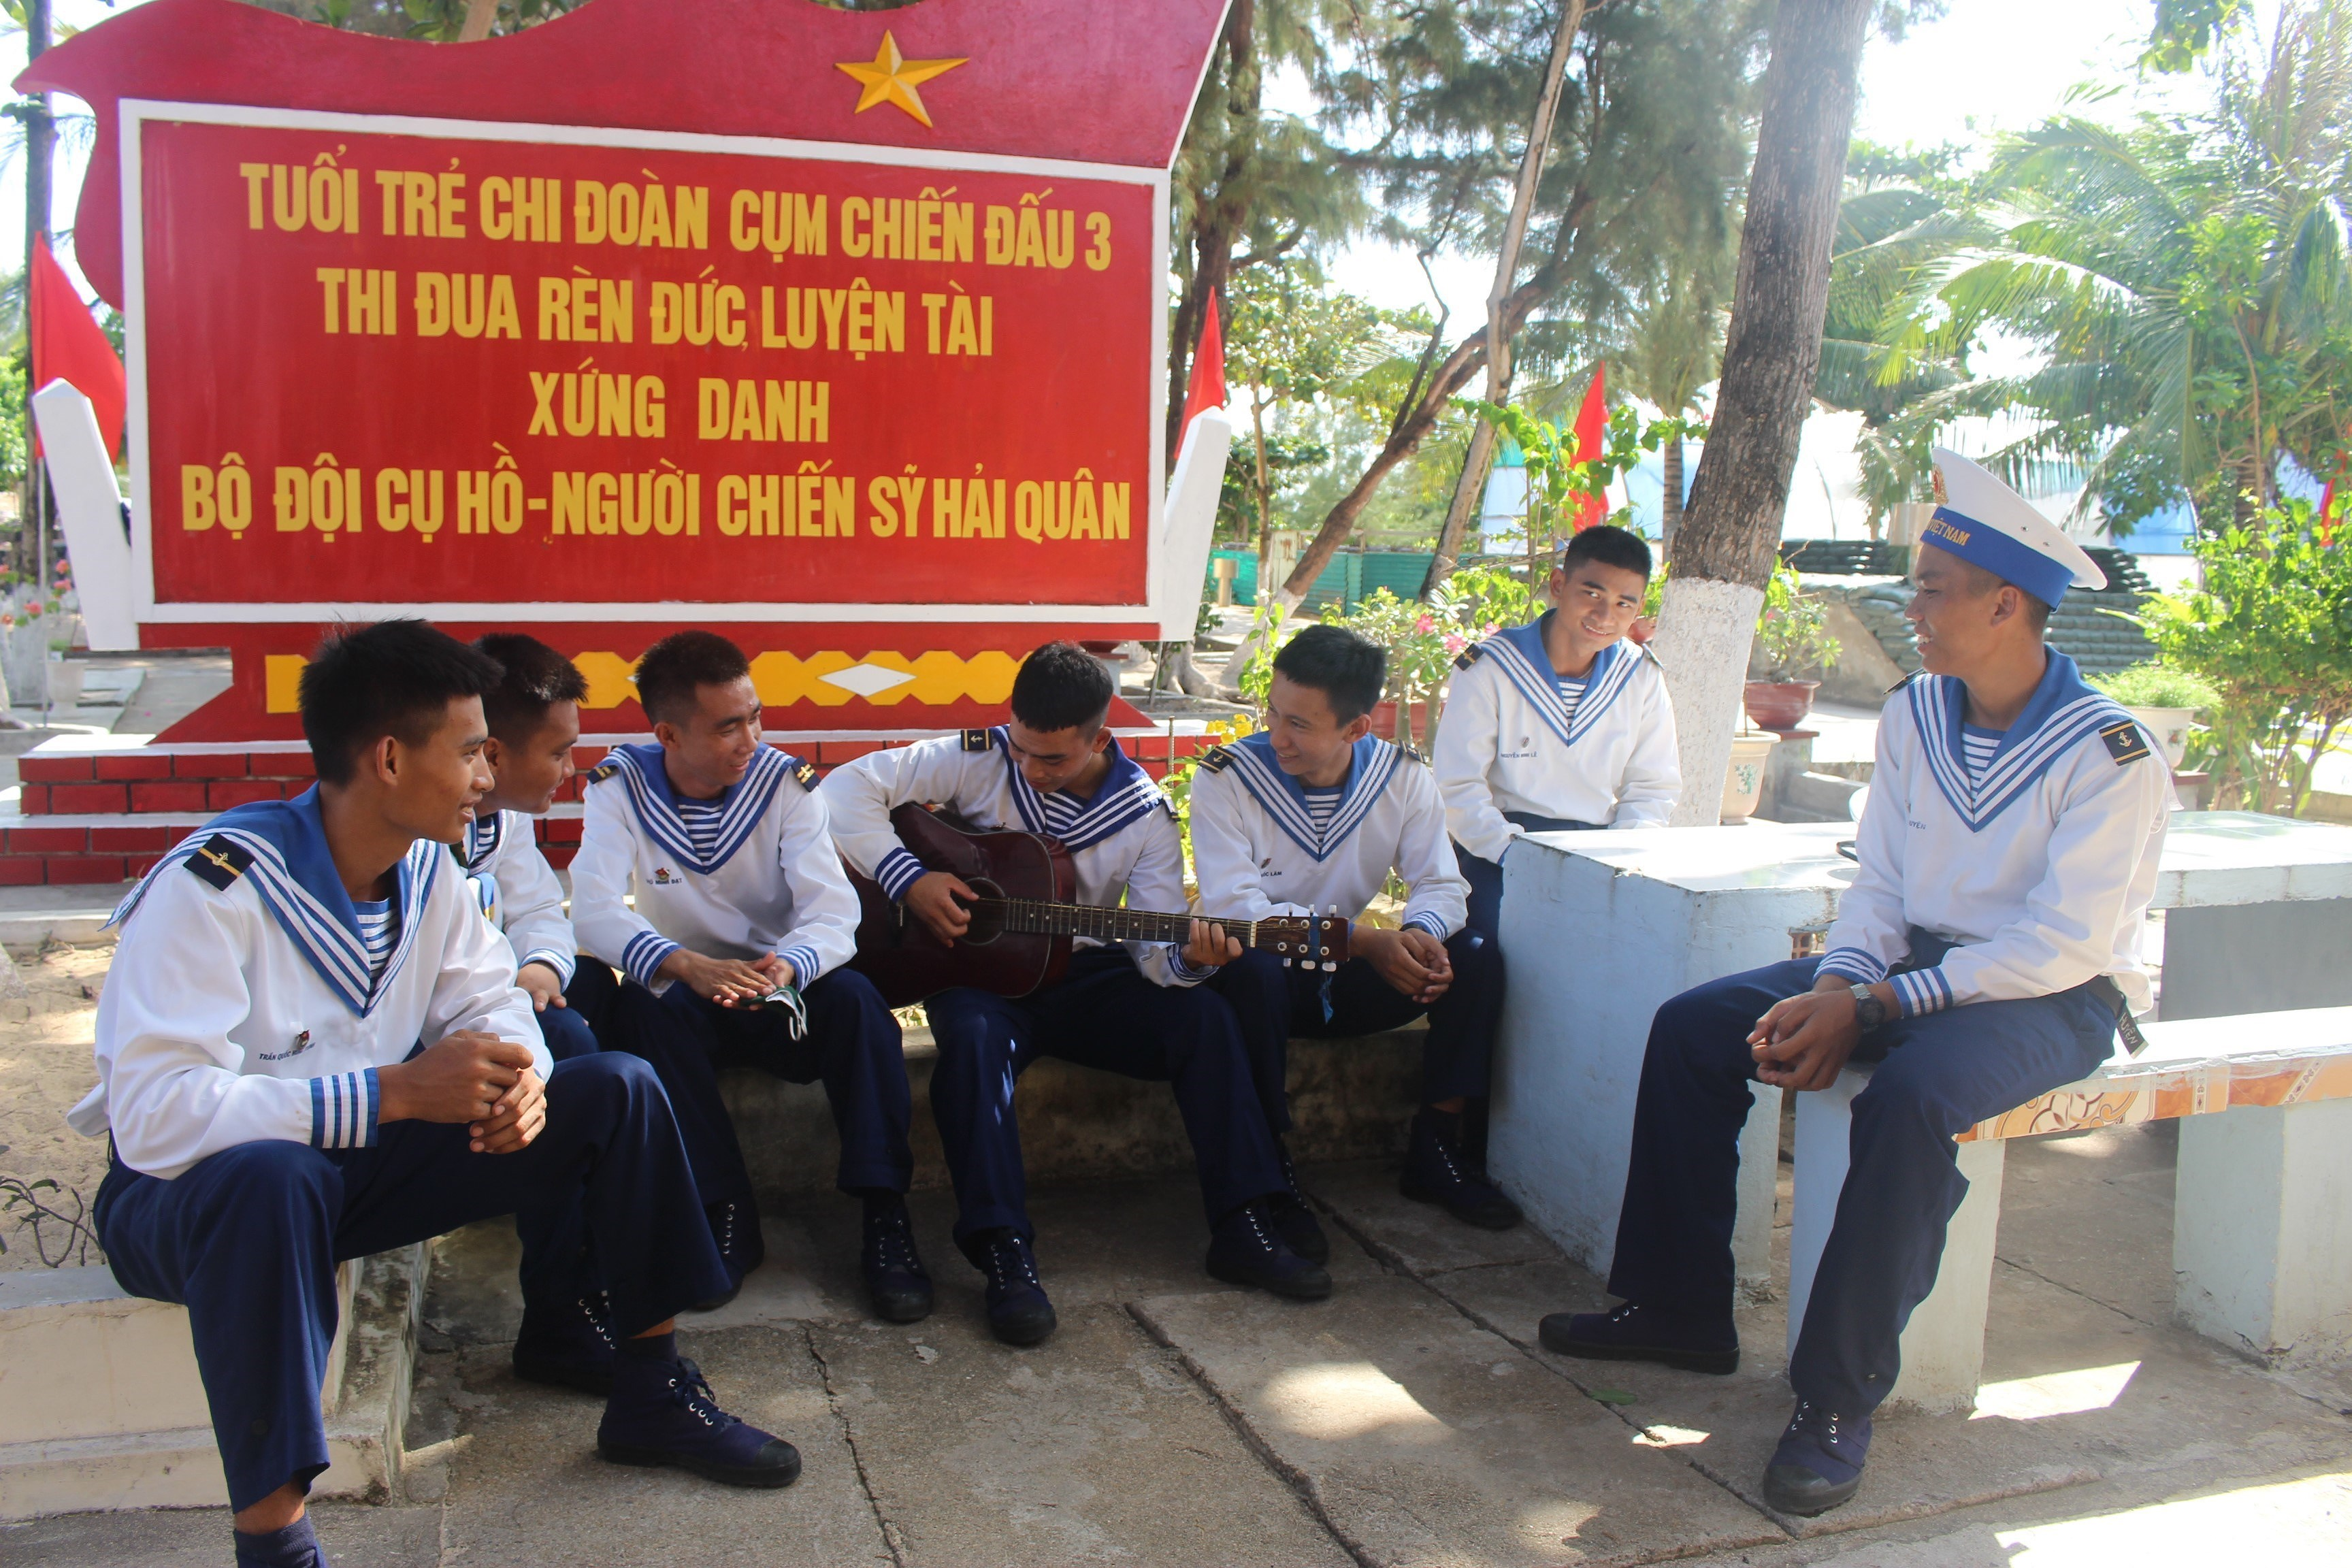 Daily life of naval soldiers in Truong Sa island district hinh anh 2